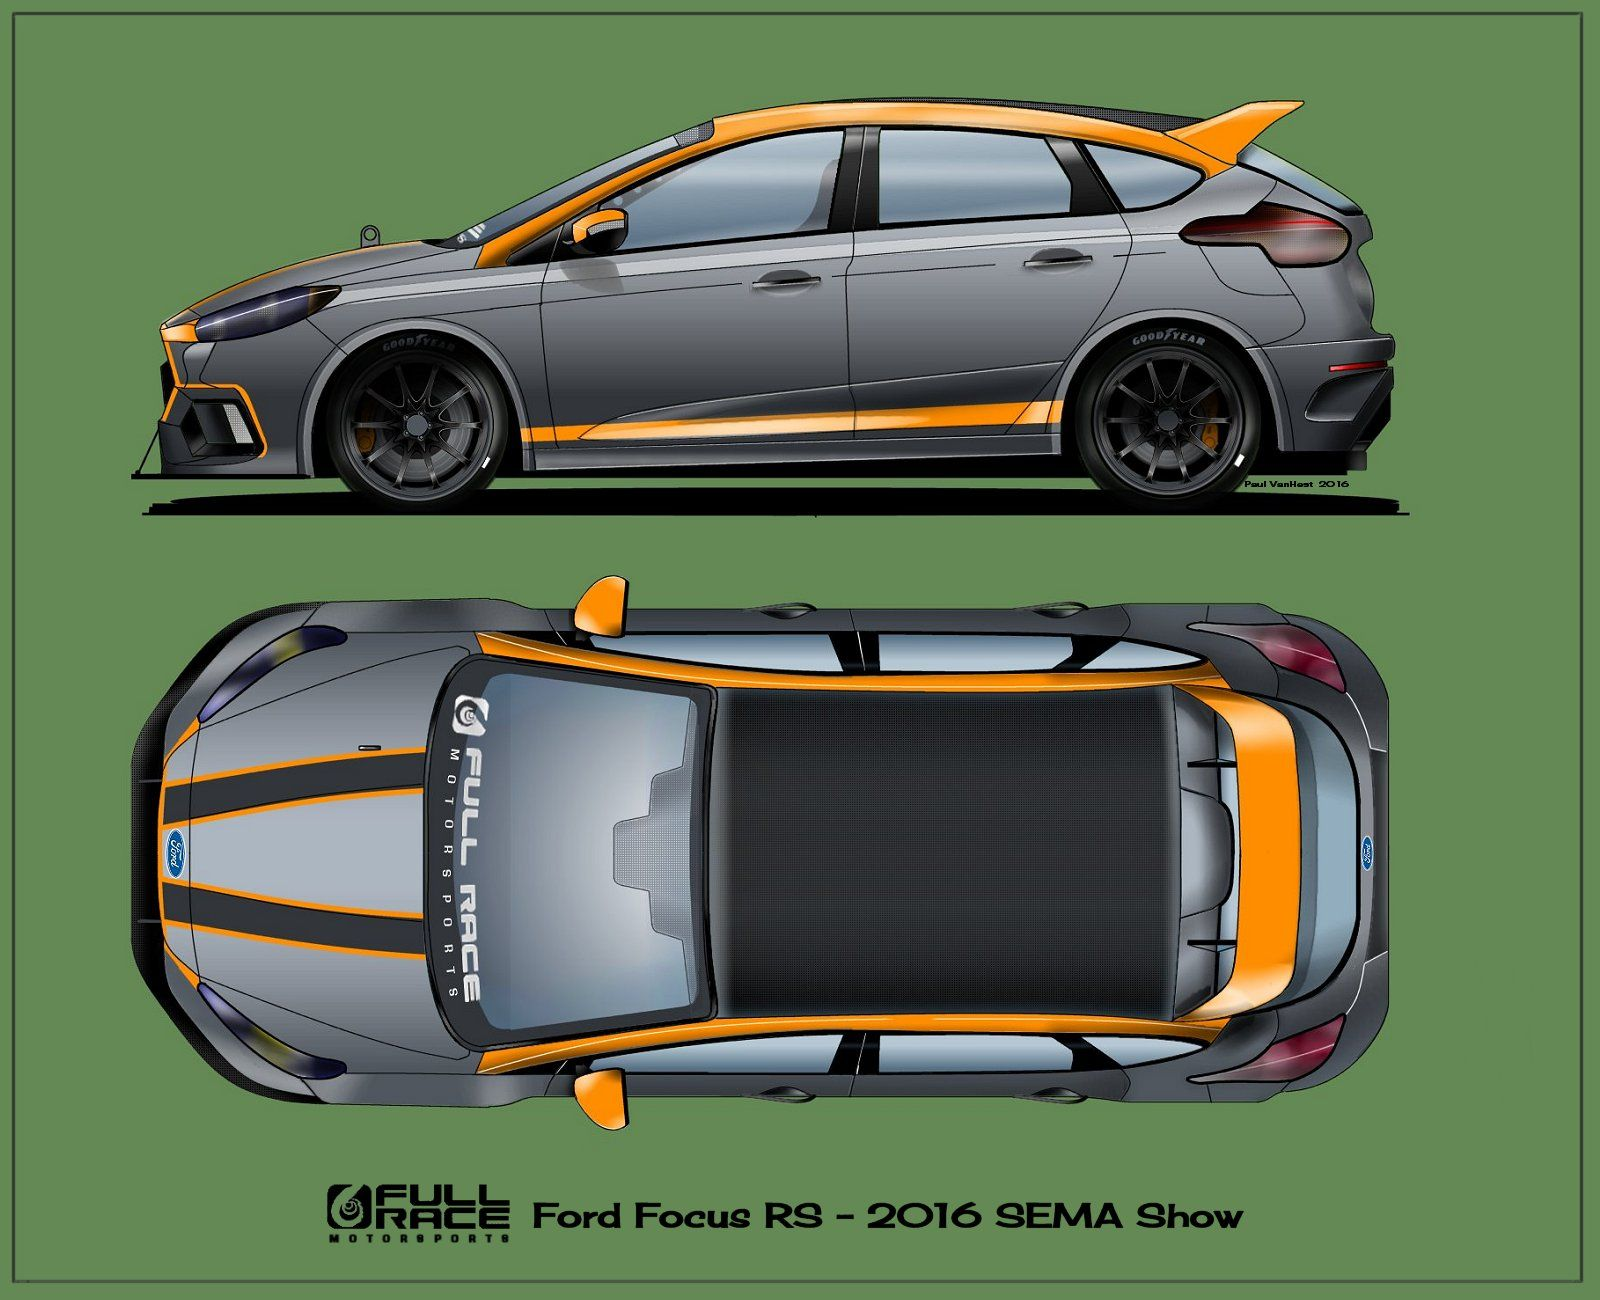 Sema Show Ford Focus Rs 2016 Livery Ford Focus